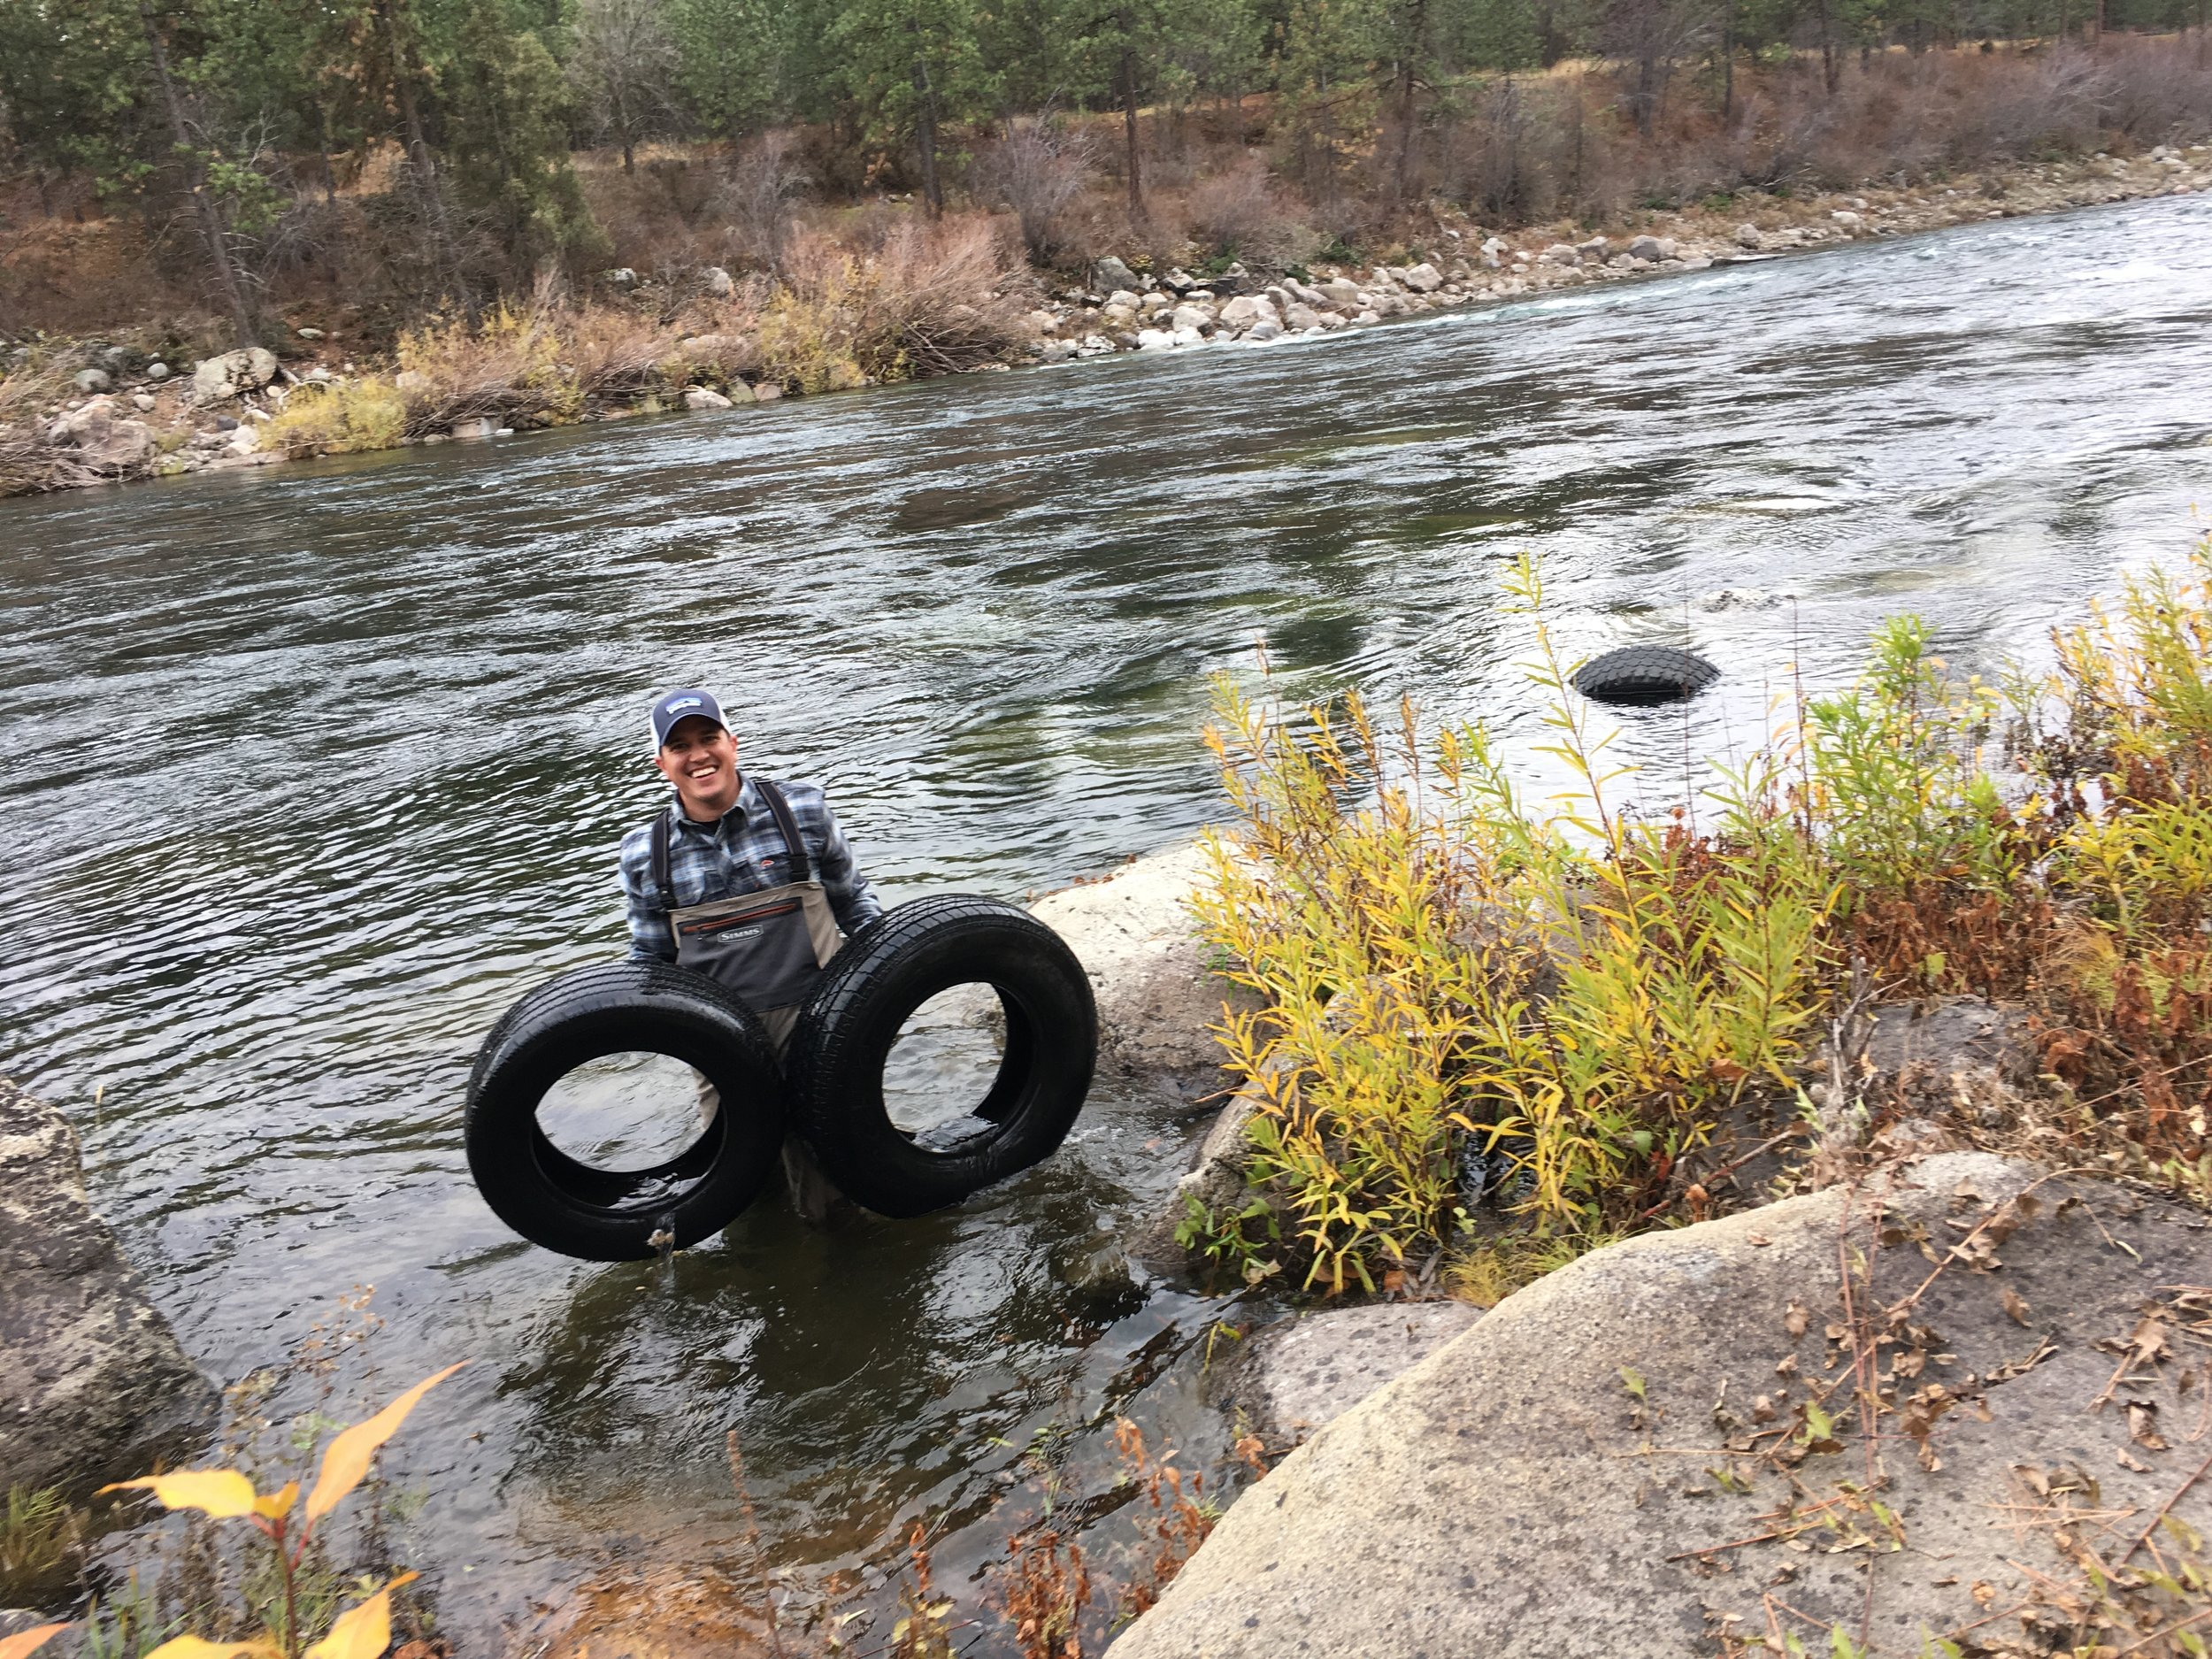 Sean Visintainer of Silver Bow Fly Shop helped us remove over 200 tires from the banks and bottom of the Spokane River.